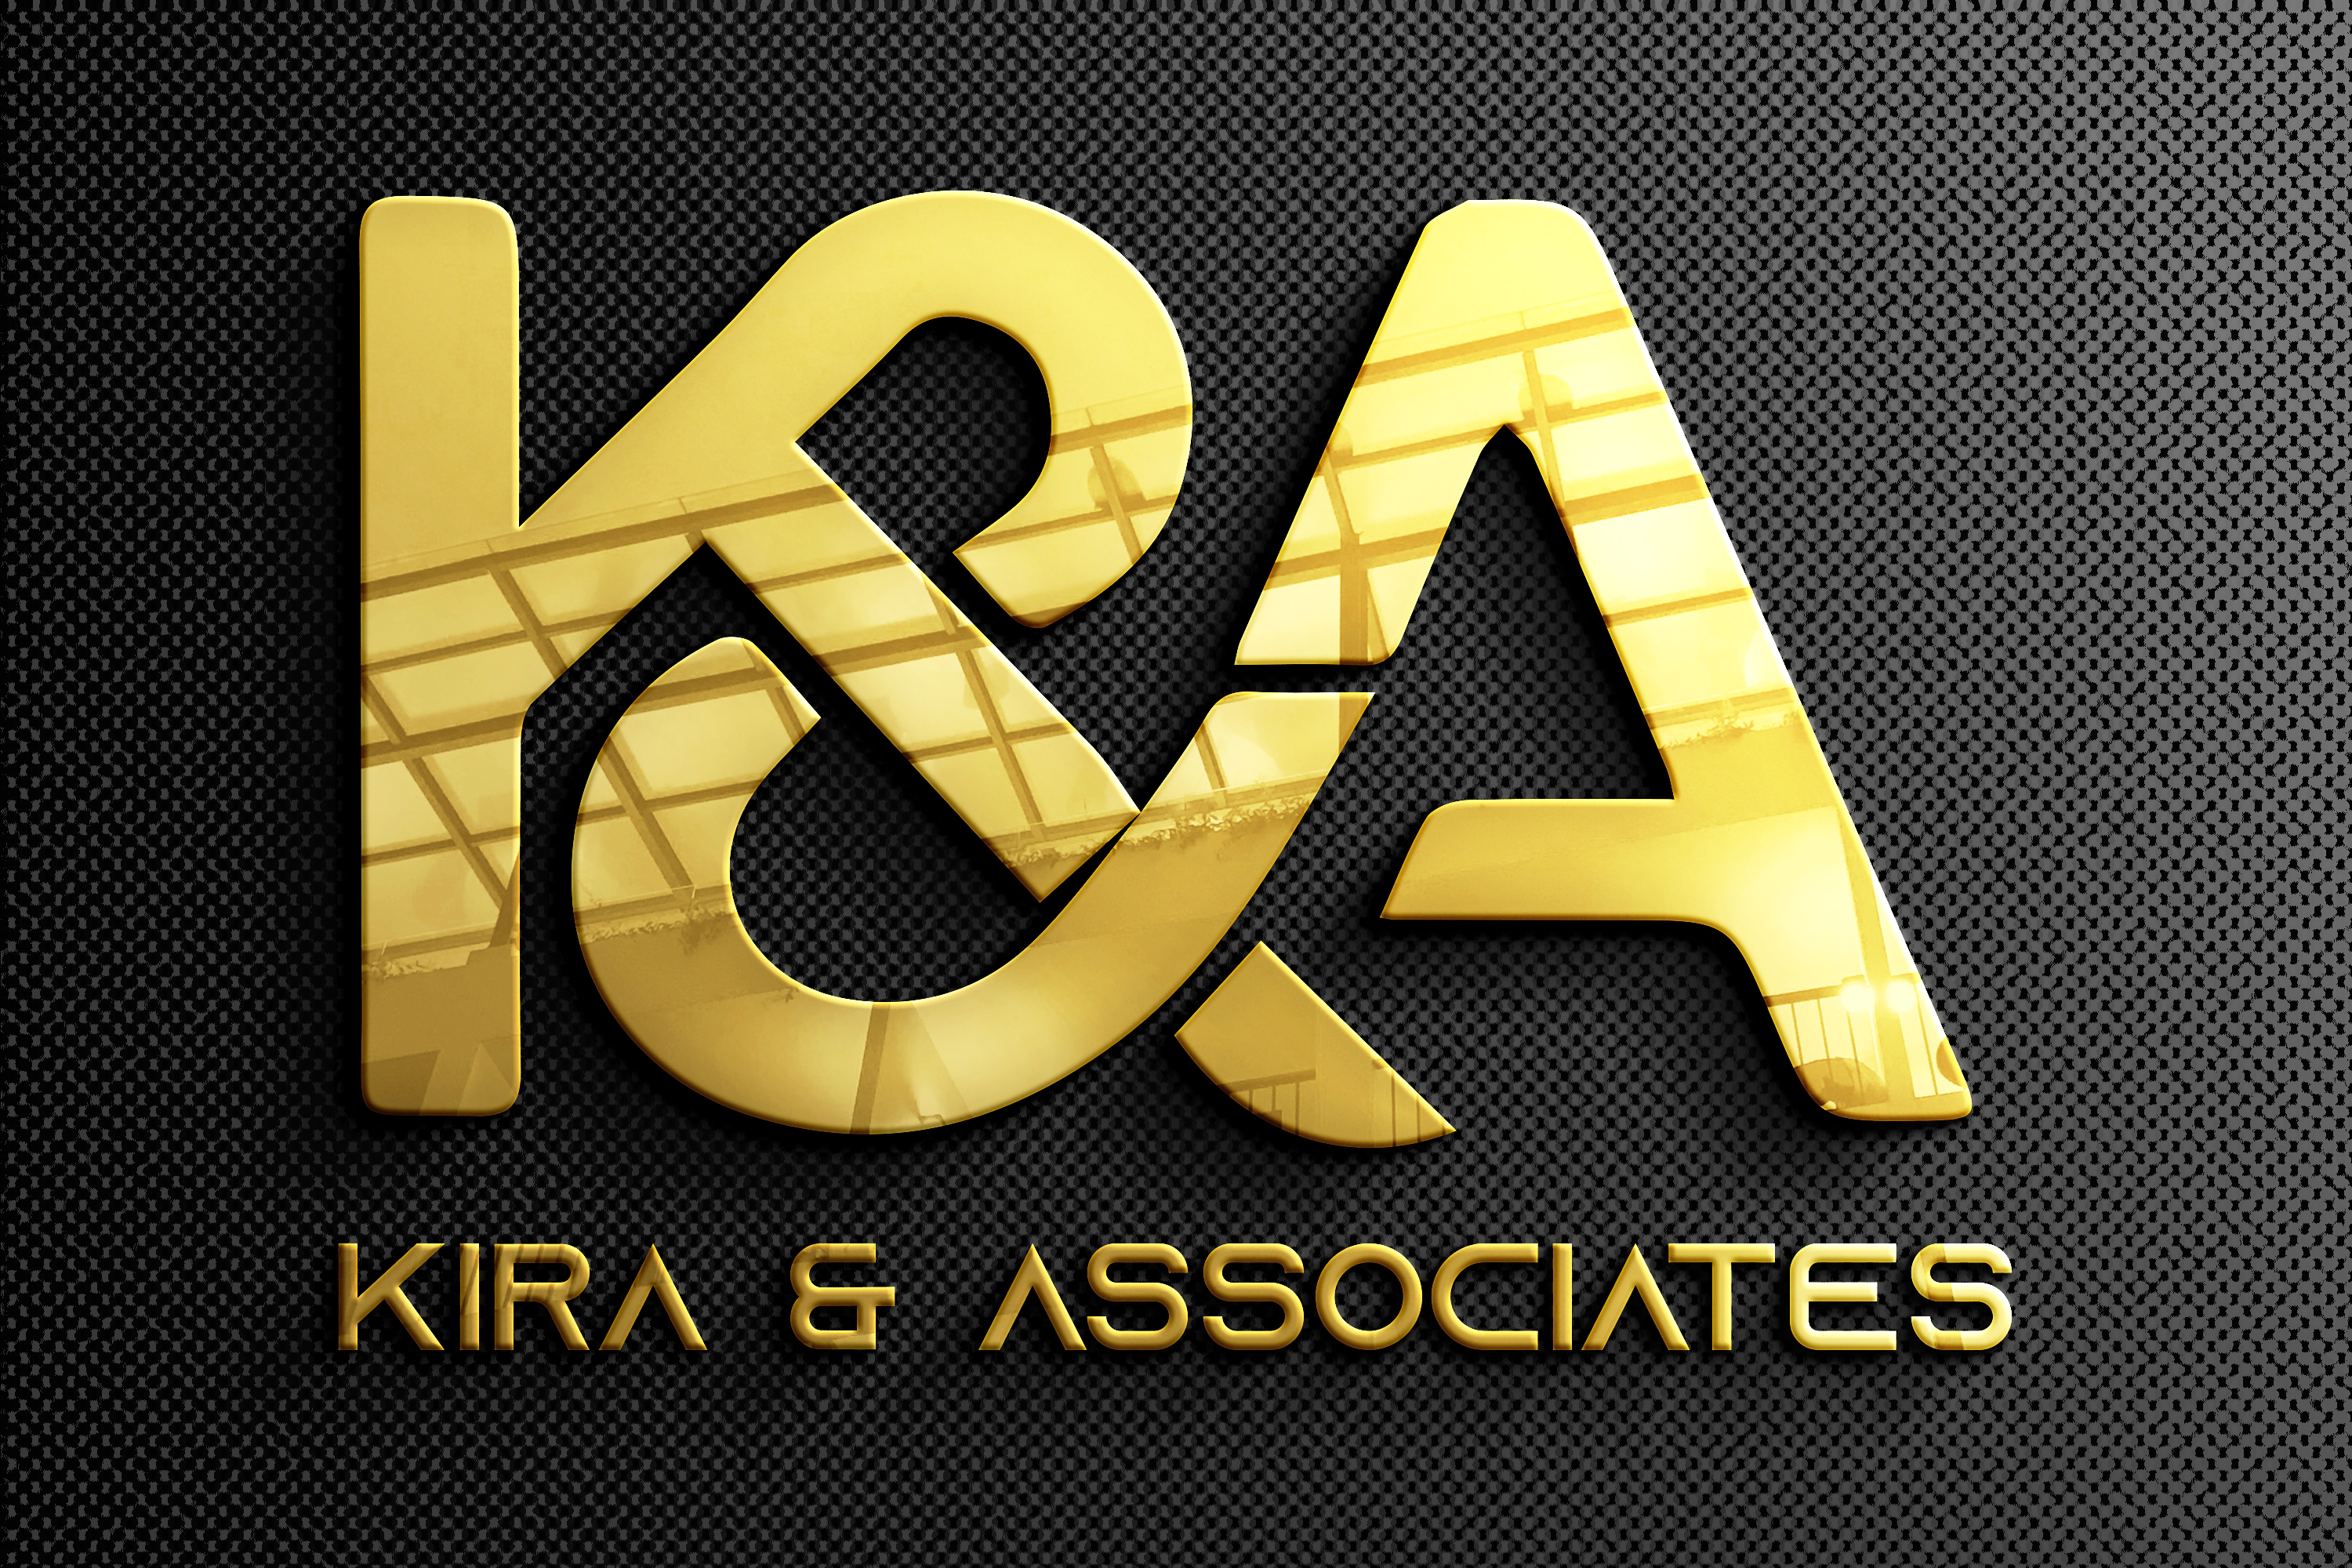 Kira & Associates Brings Huge Bouquet of Digital Services for Client Success in Every Field